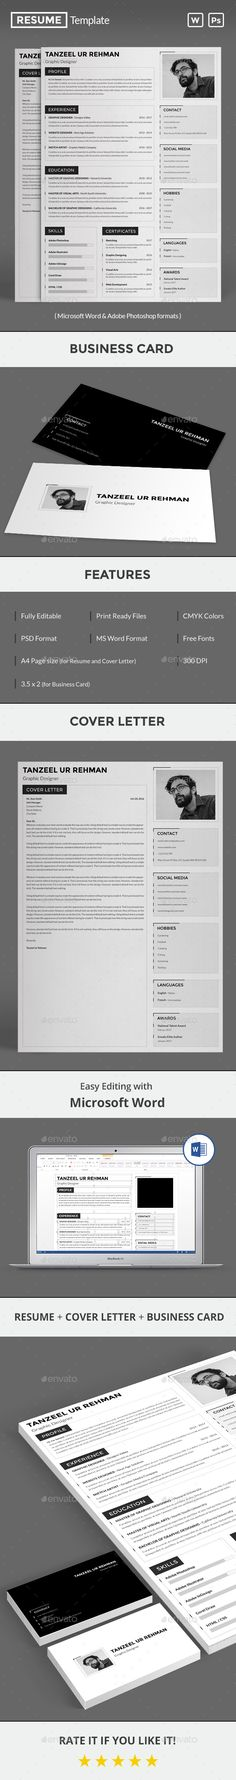 Job Resume   CV Template The Ultimate Professional Resume - easy way to make a resume